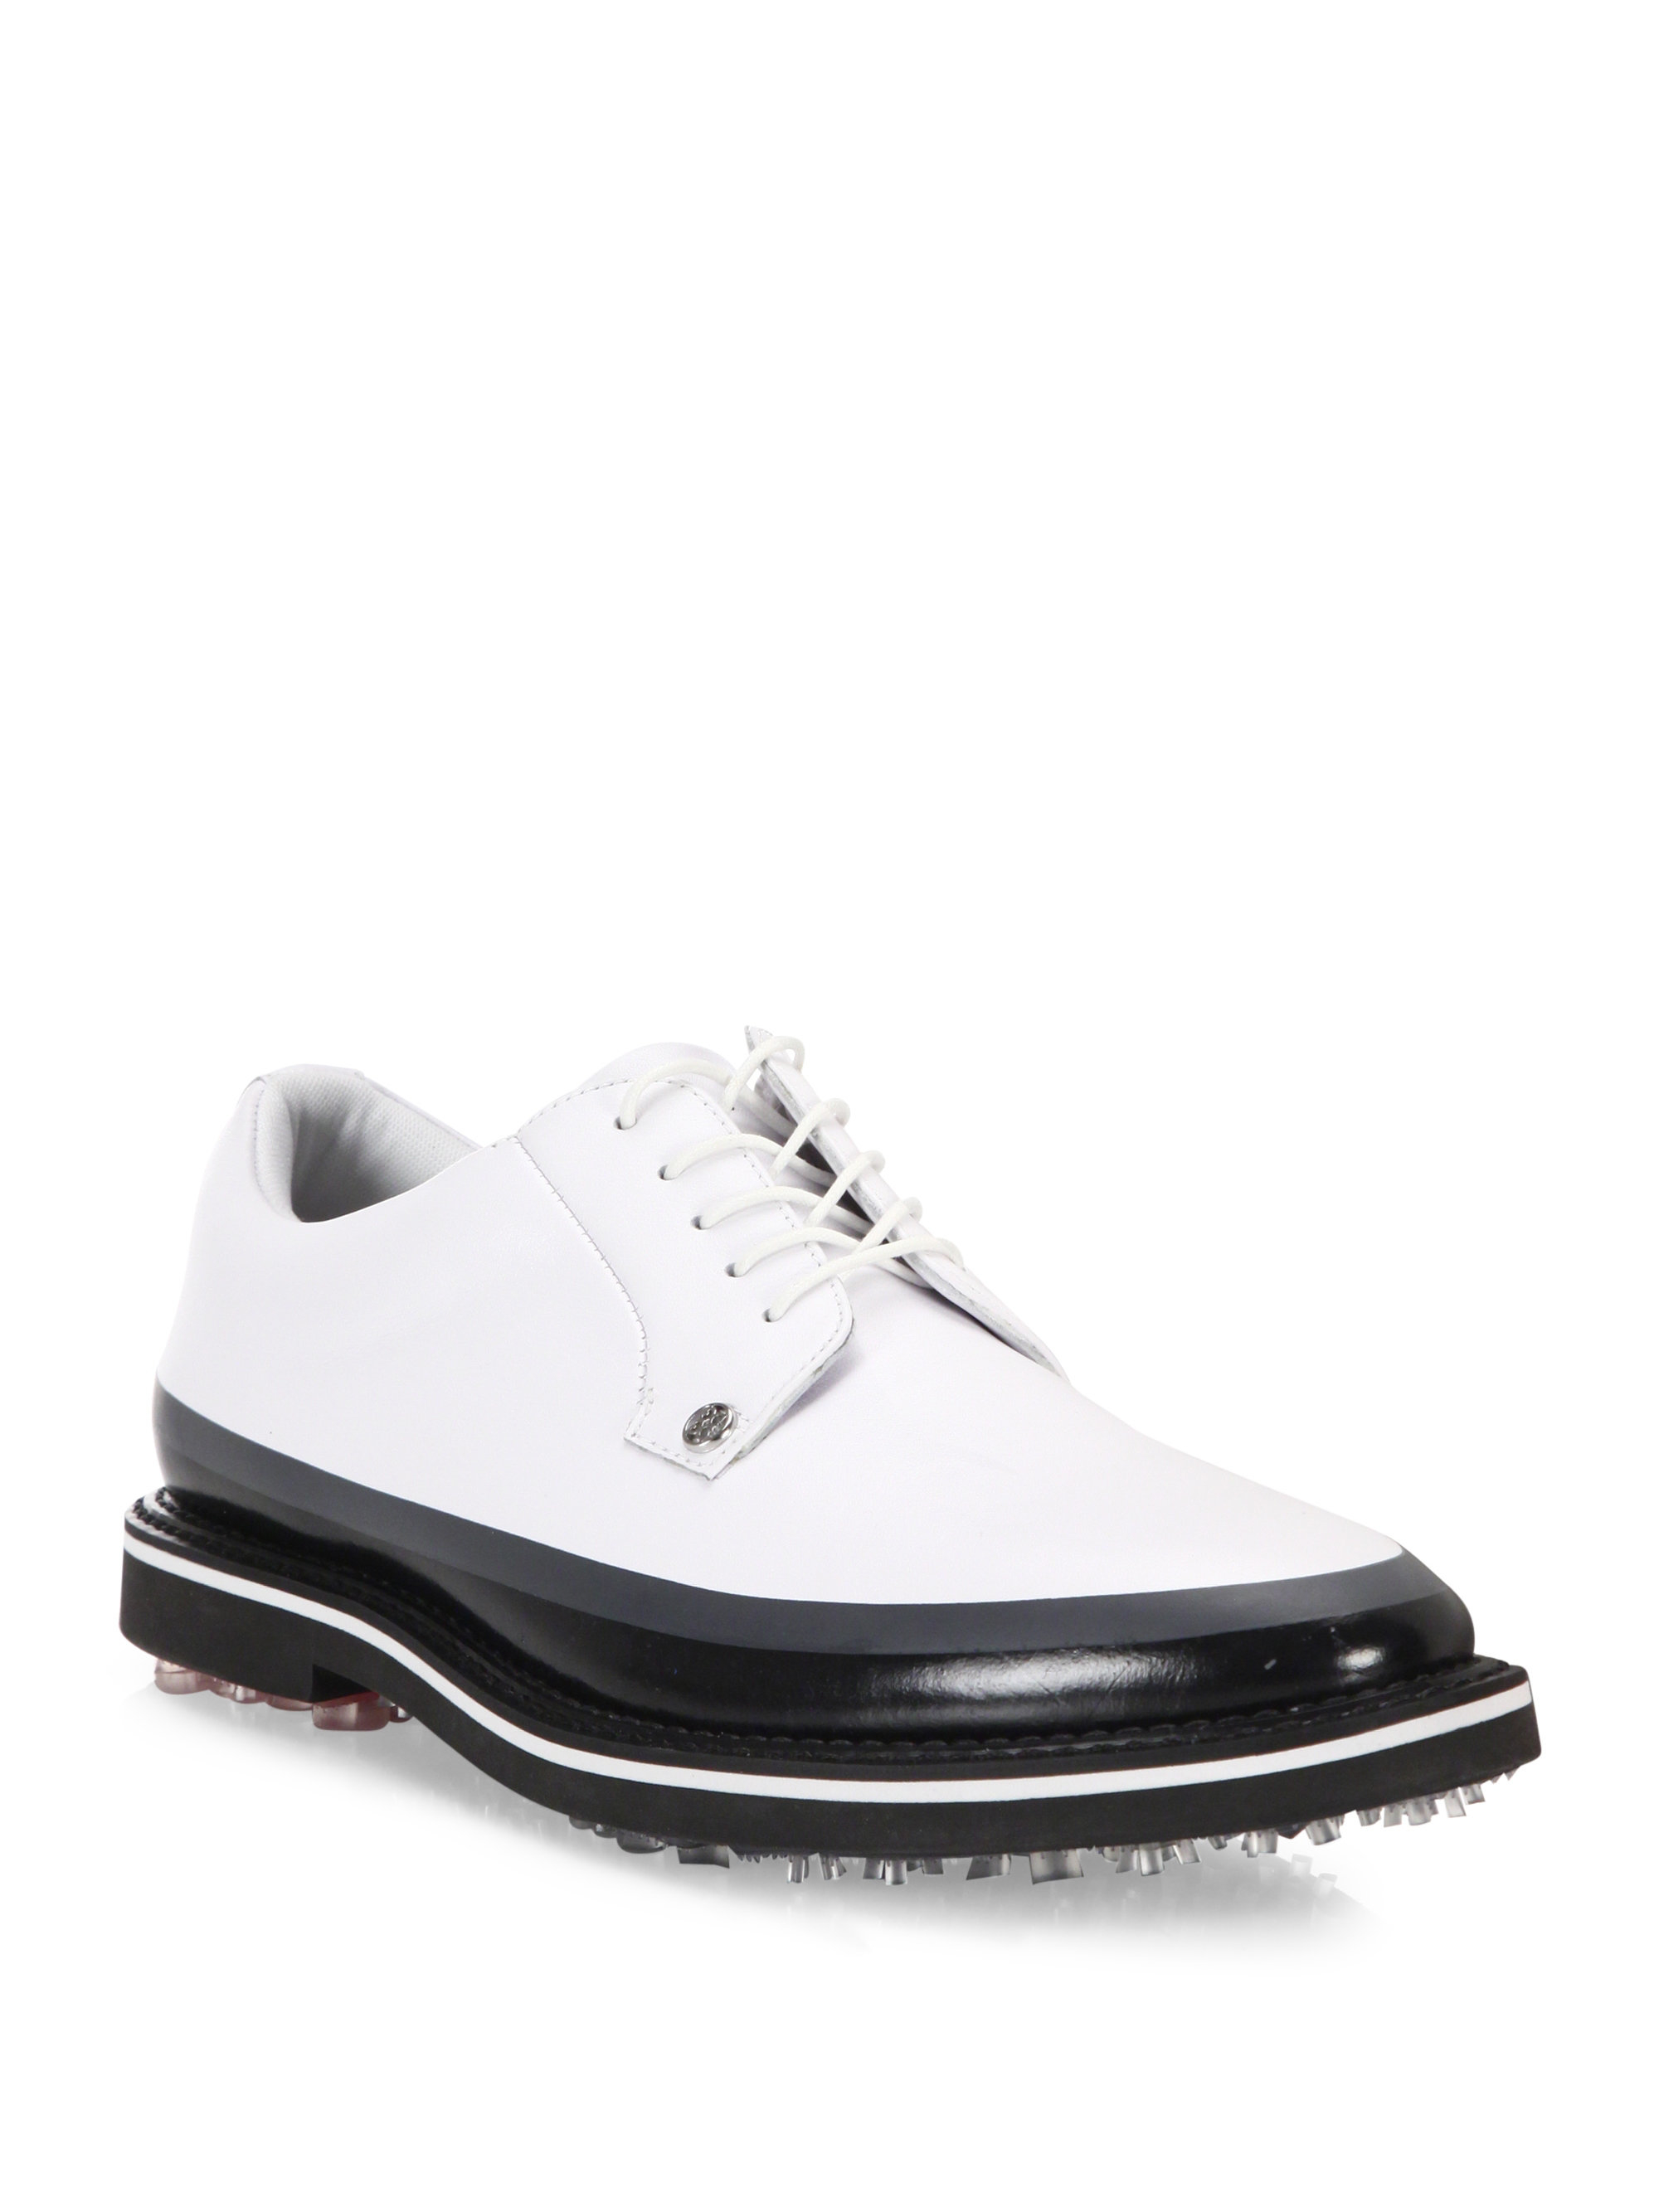 g fore gallivanter waterproof leather shoes in white for